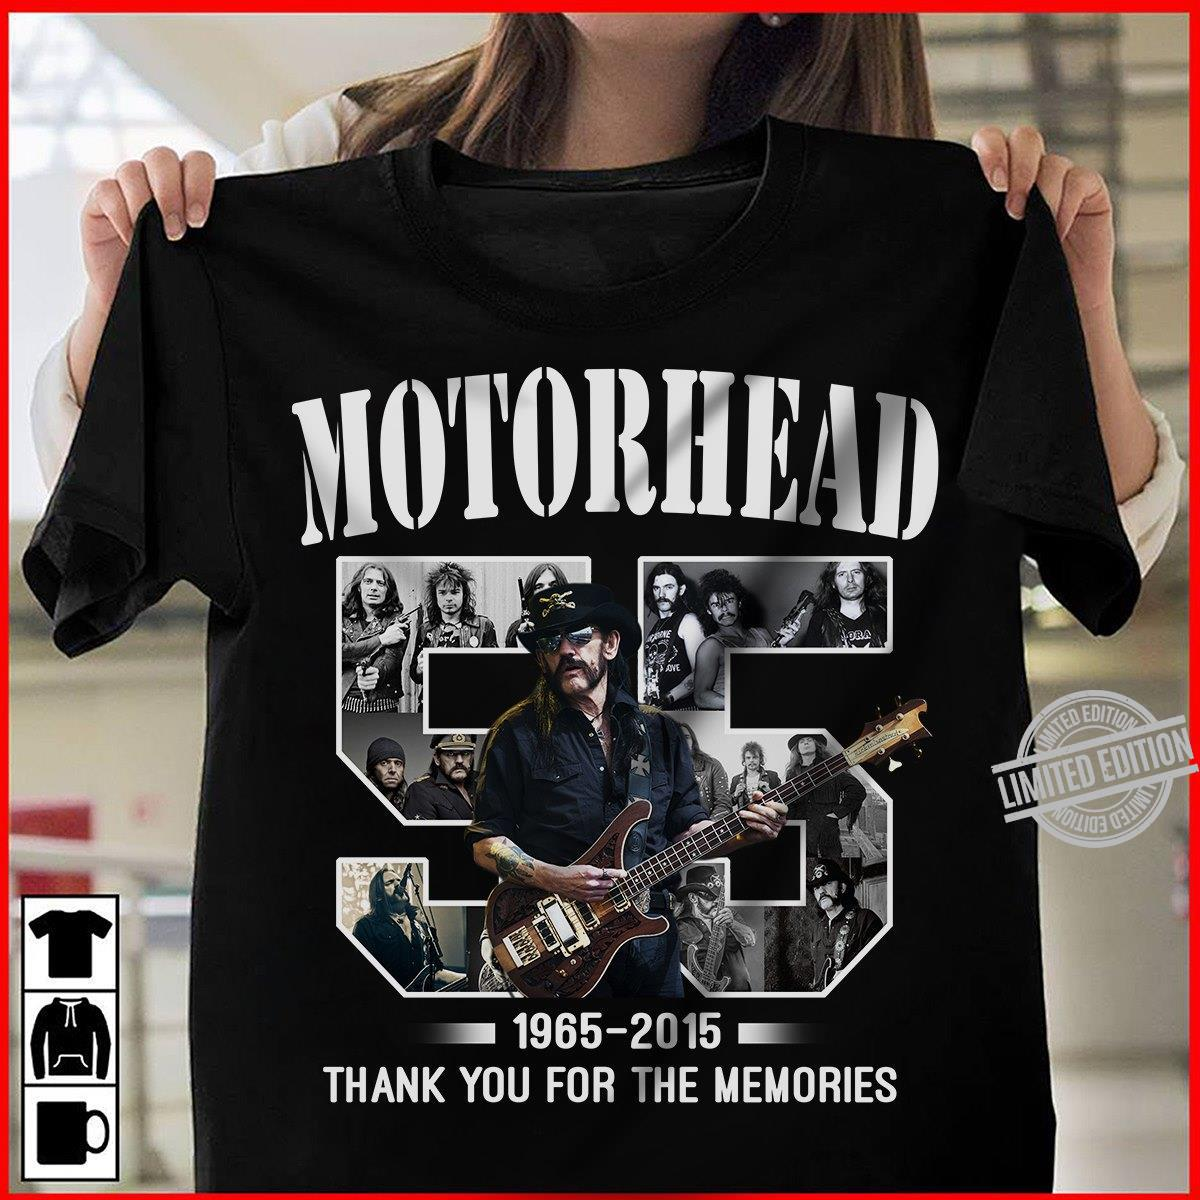 Motorhead 55 1965-2015 Thank You For The Memories Shirt